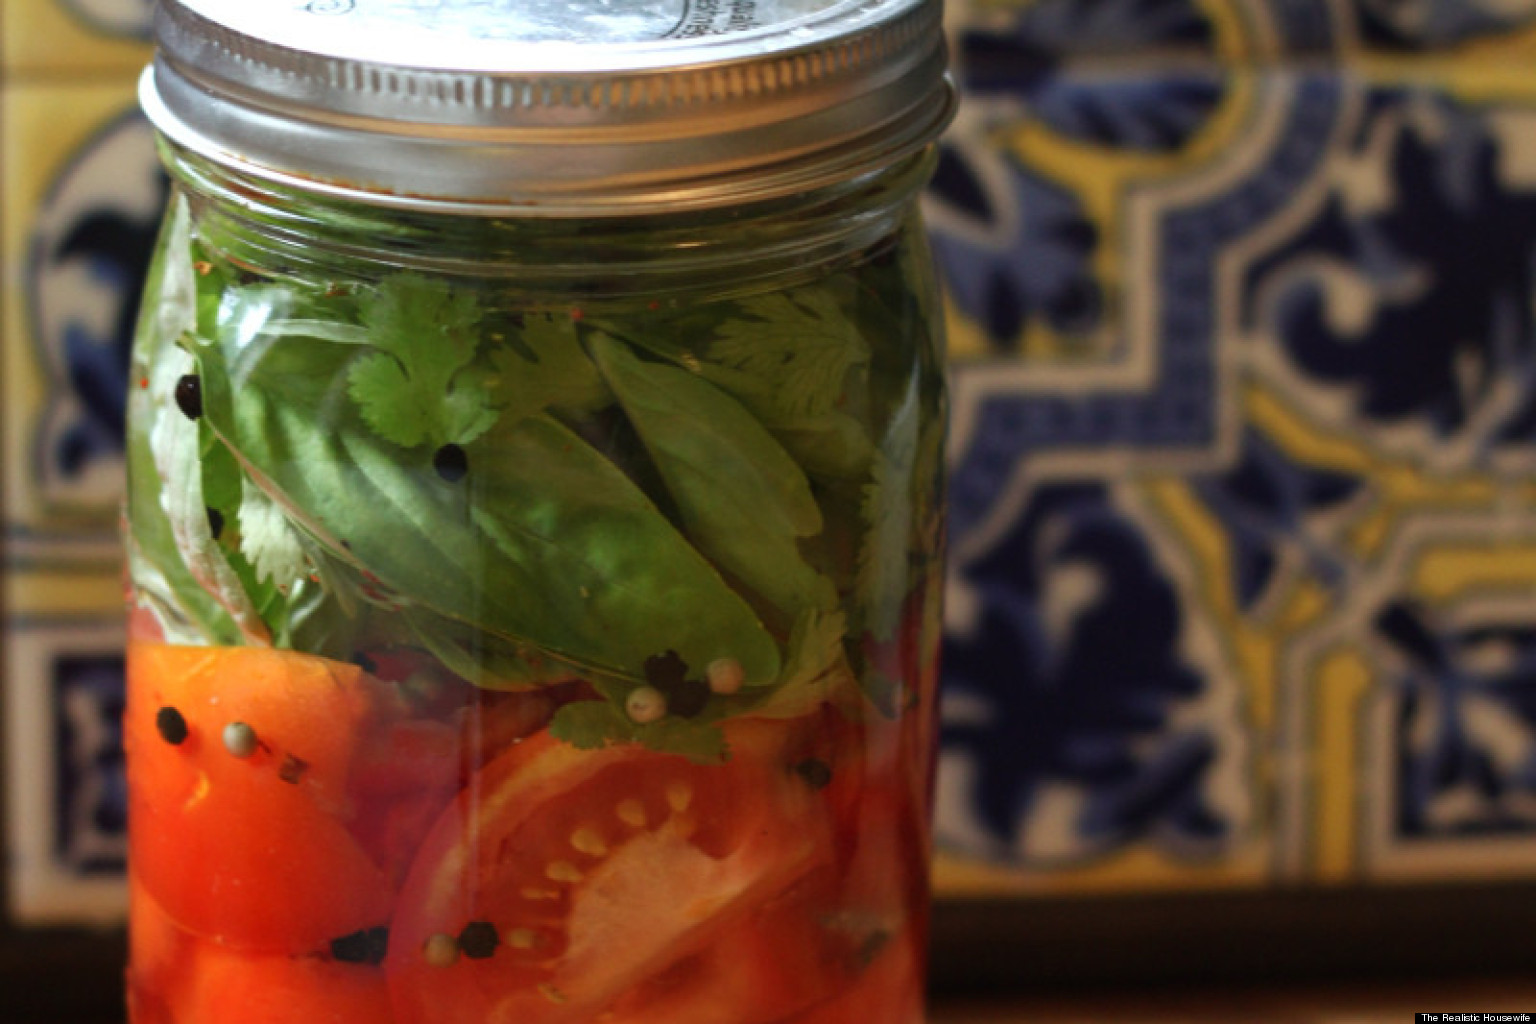 Savory infused liquor recipes make great gifts and better cocktails savory infused liquor recipes make great gifts and better cocktails photos huffpost forumfinder Image collections